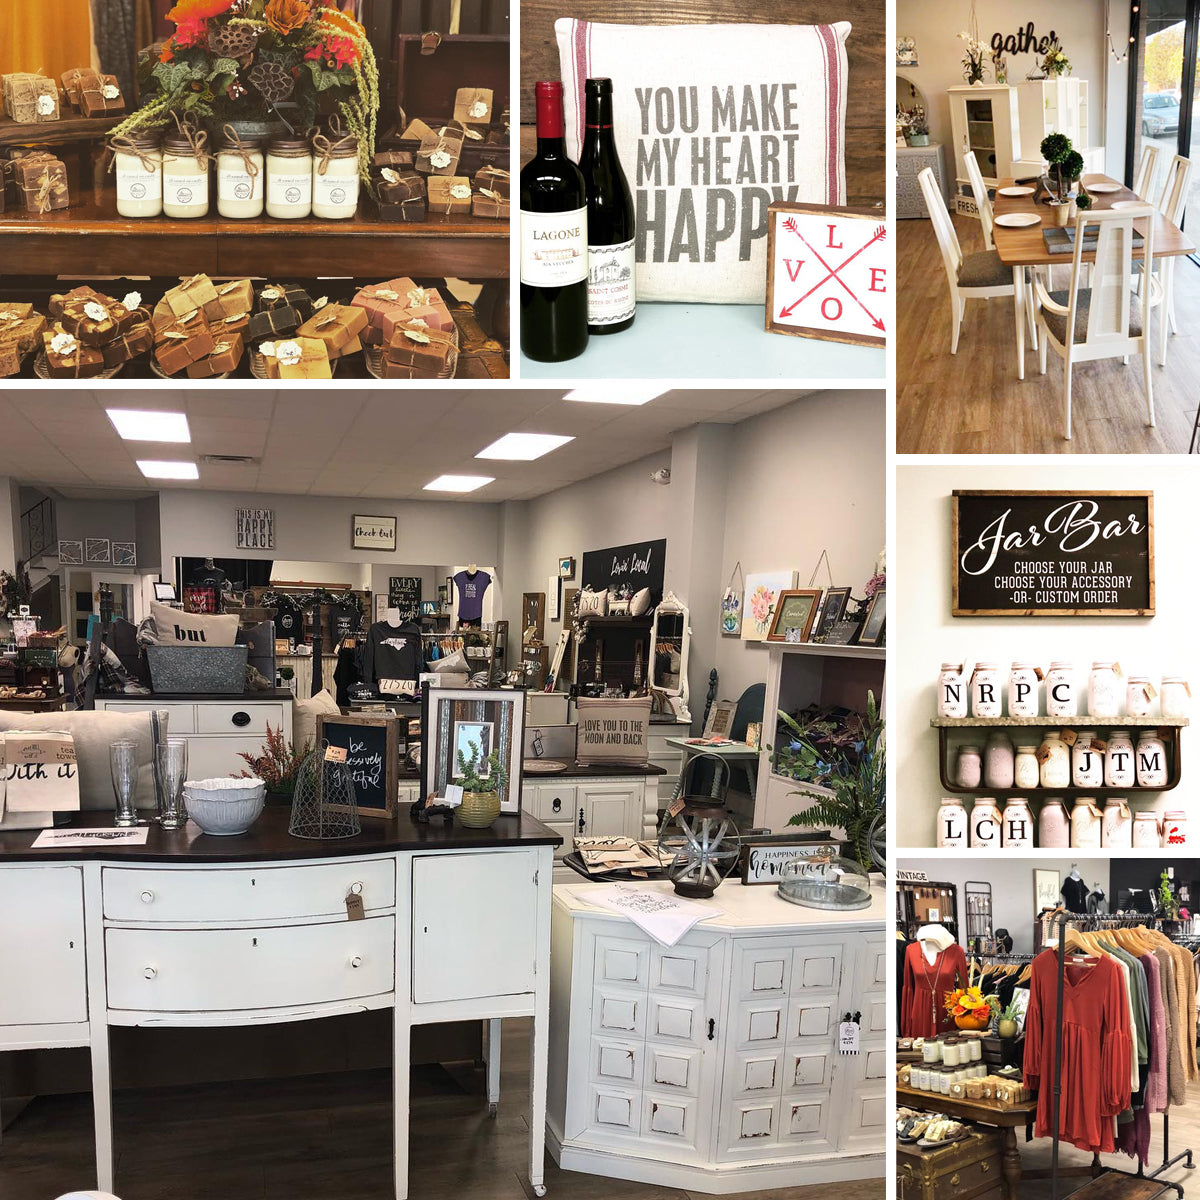 The Market at Three Little Birds is a three story hodge podge of local North Carolina artisans in Clayton